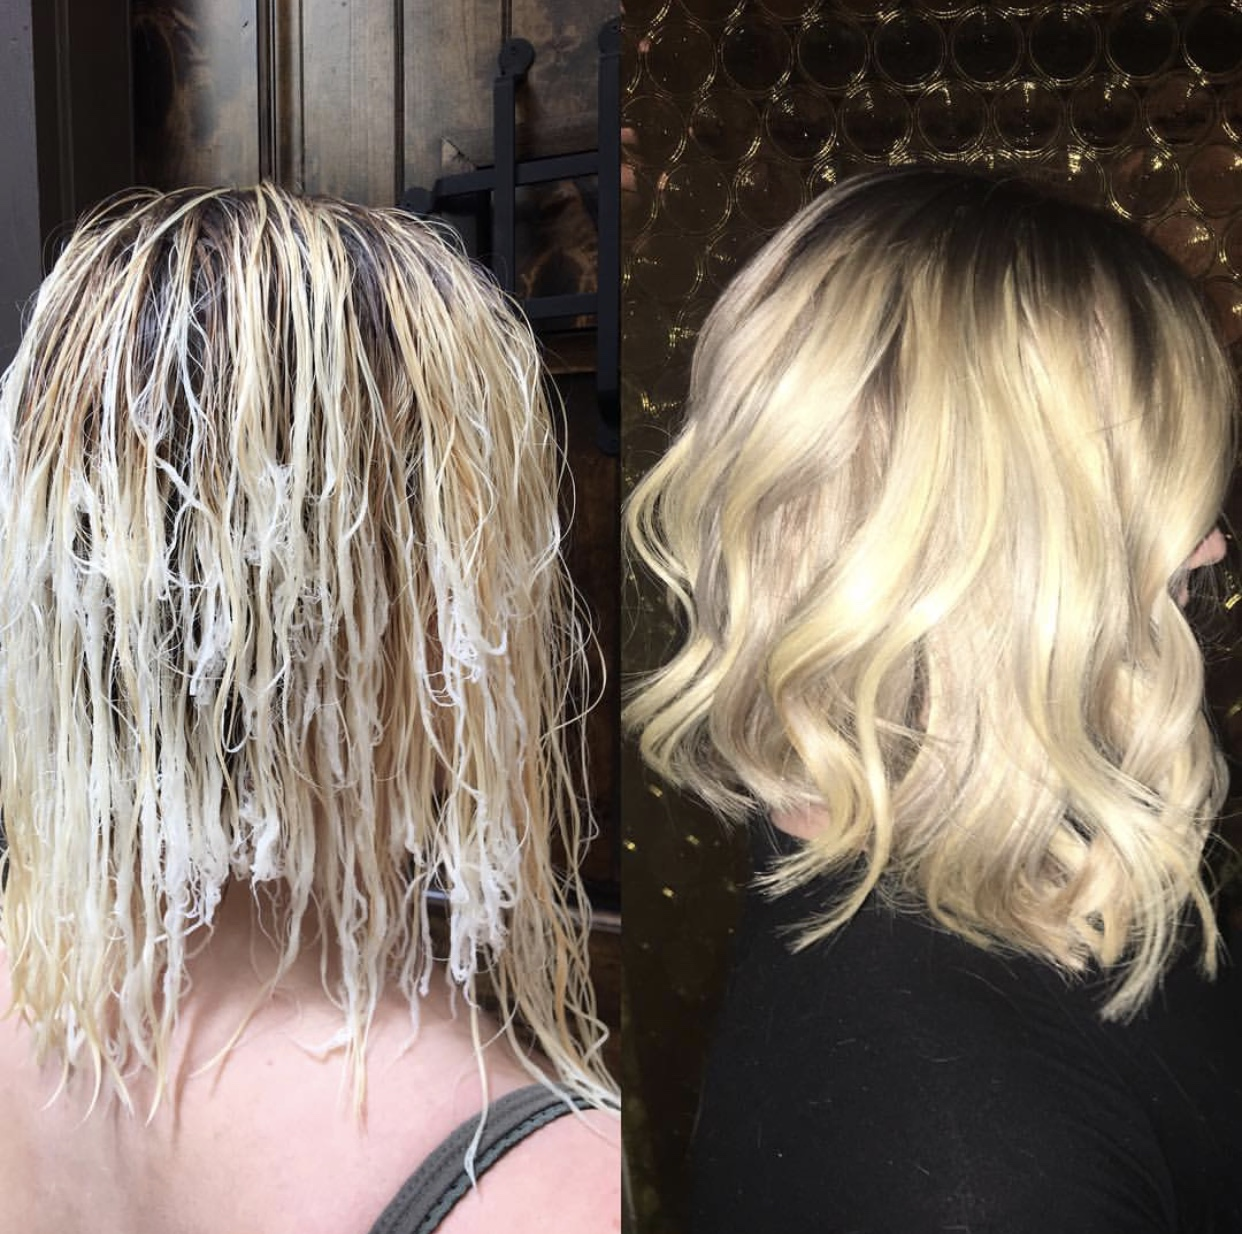 Total Hair Transformation: Melted Hair Saved by Well-Timed Hair Color, Treatments and Extensions